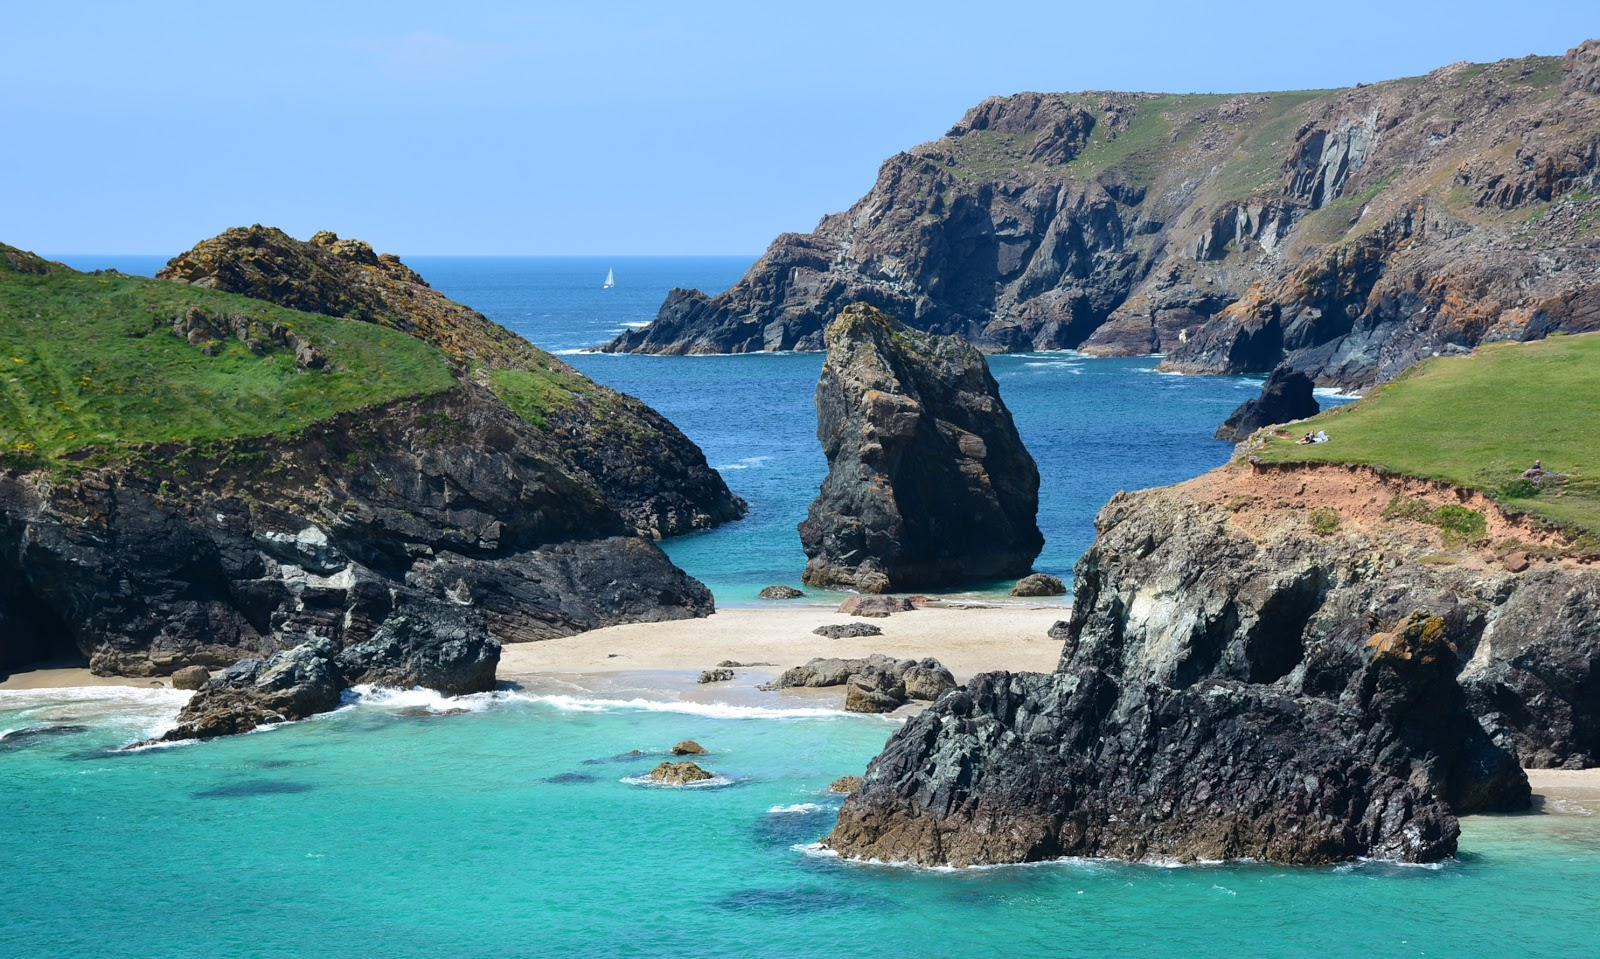 Kynance Cove in Cornwall, England